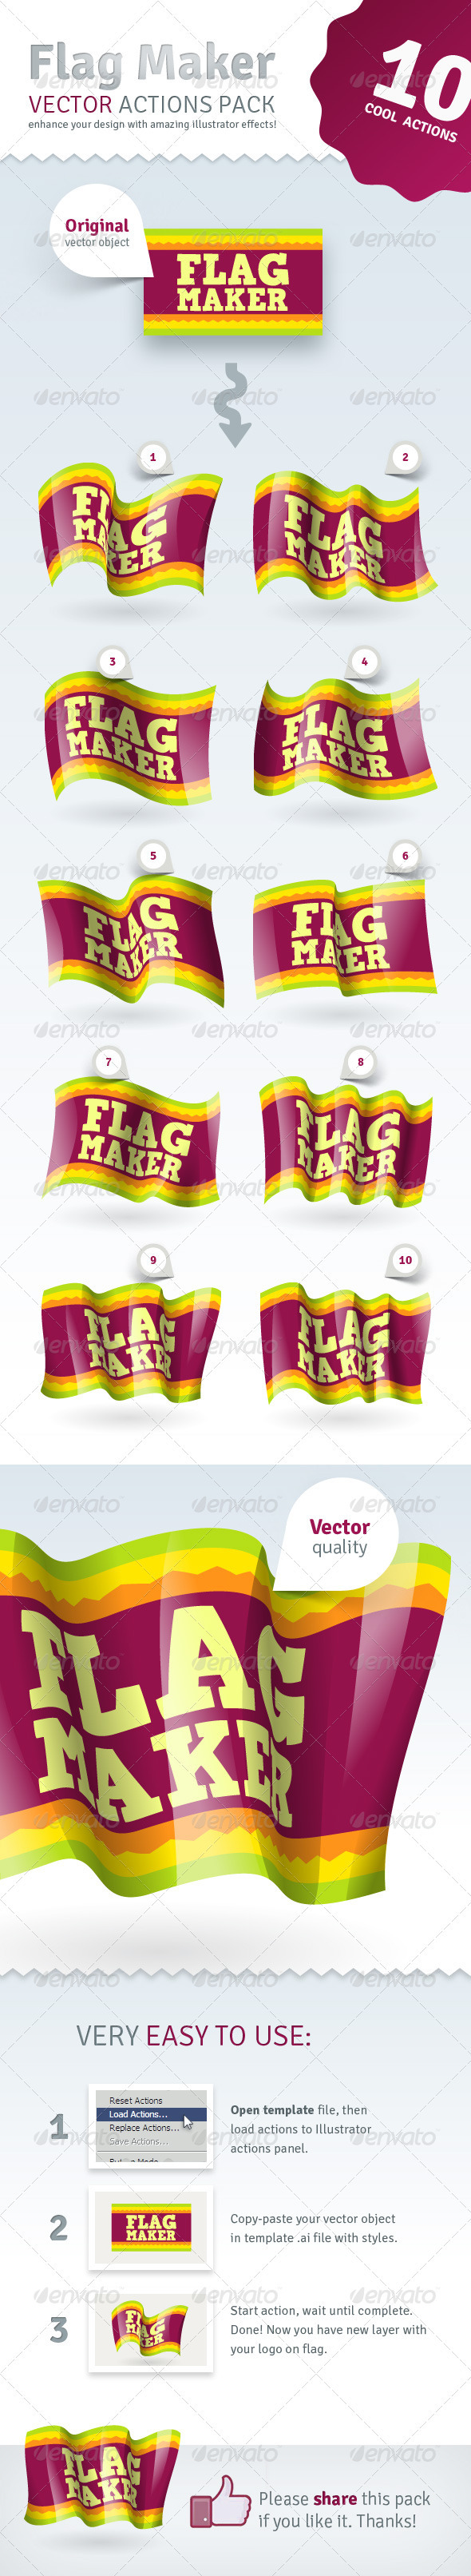 Flag Maker Vector Actions Pack